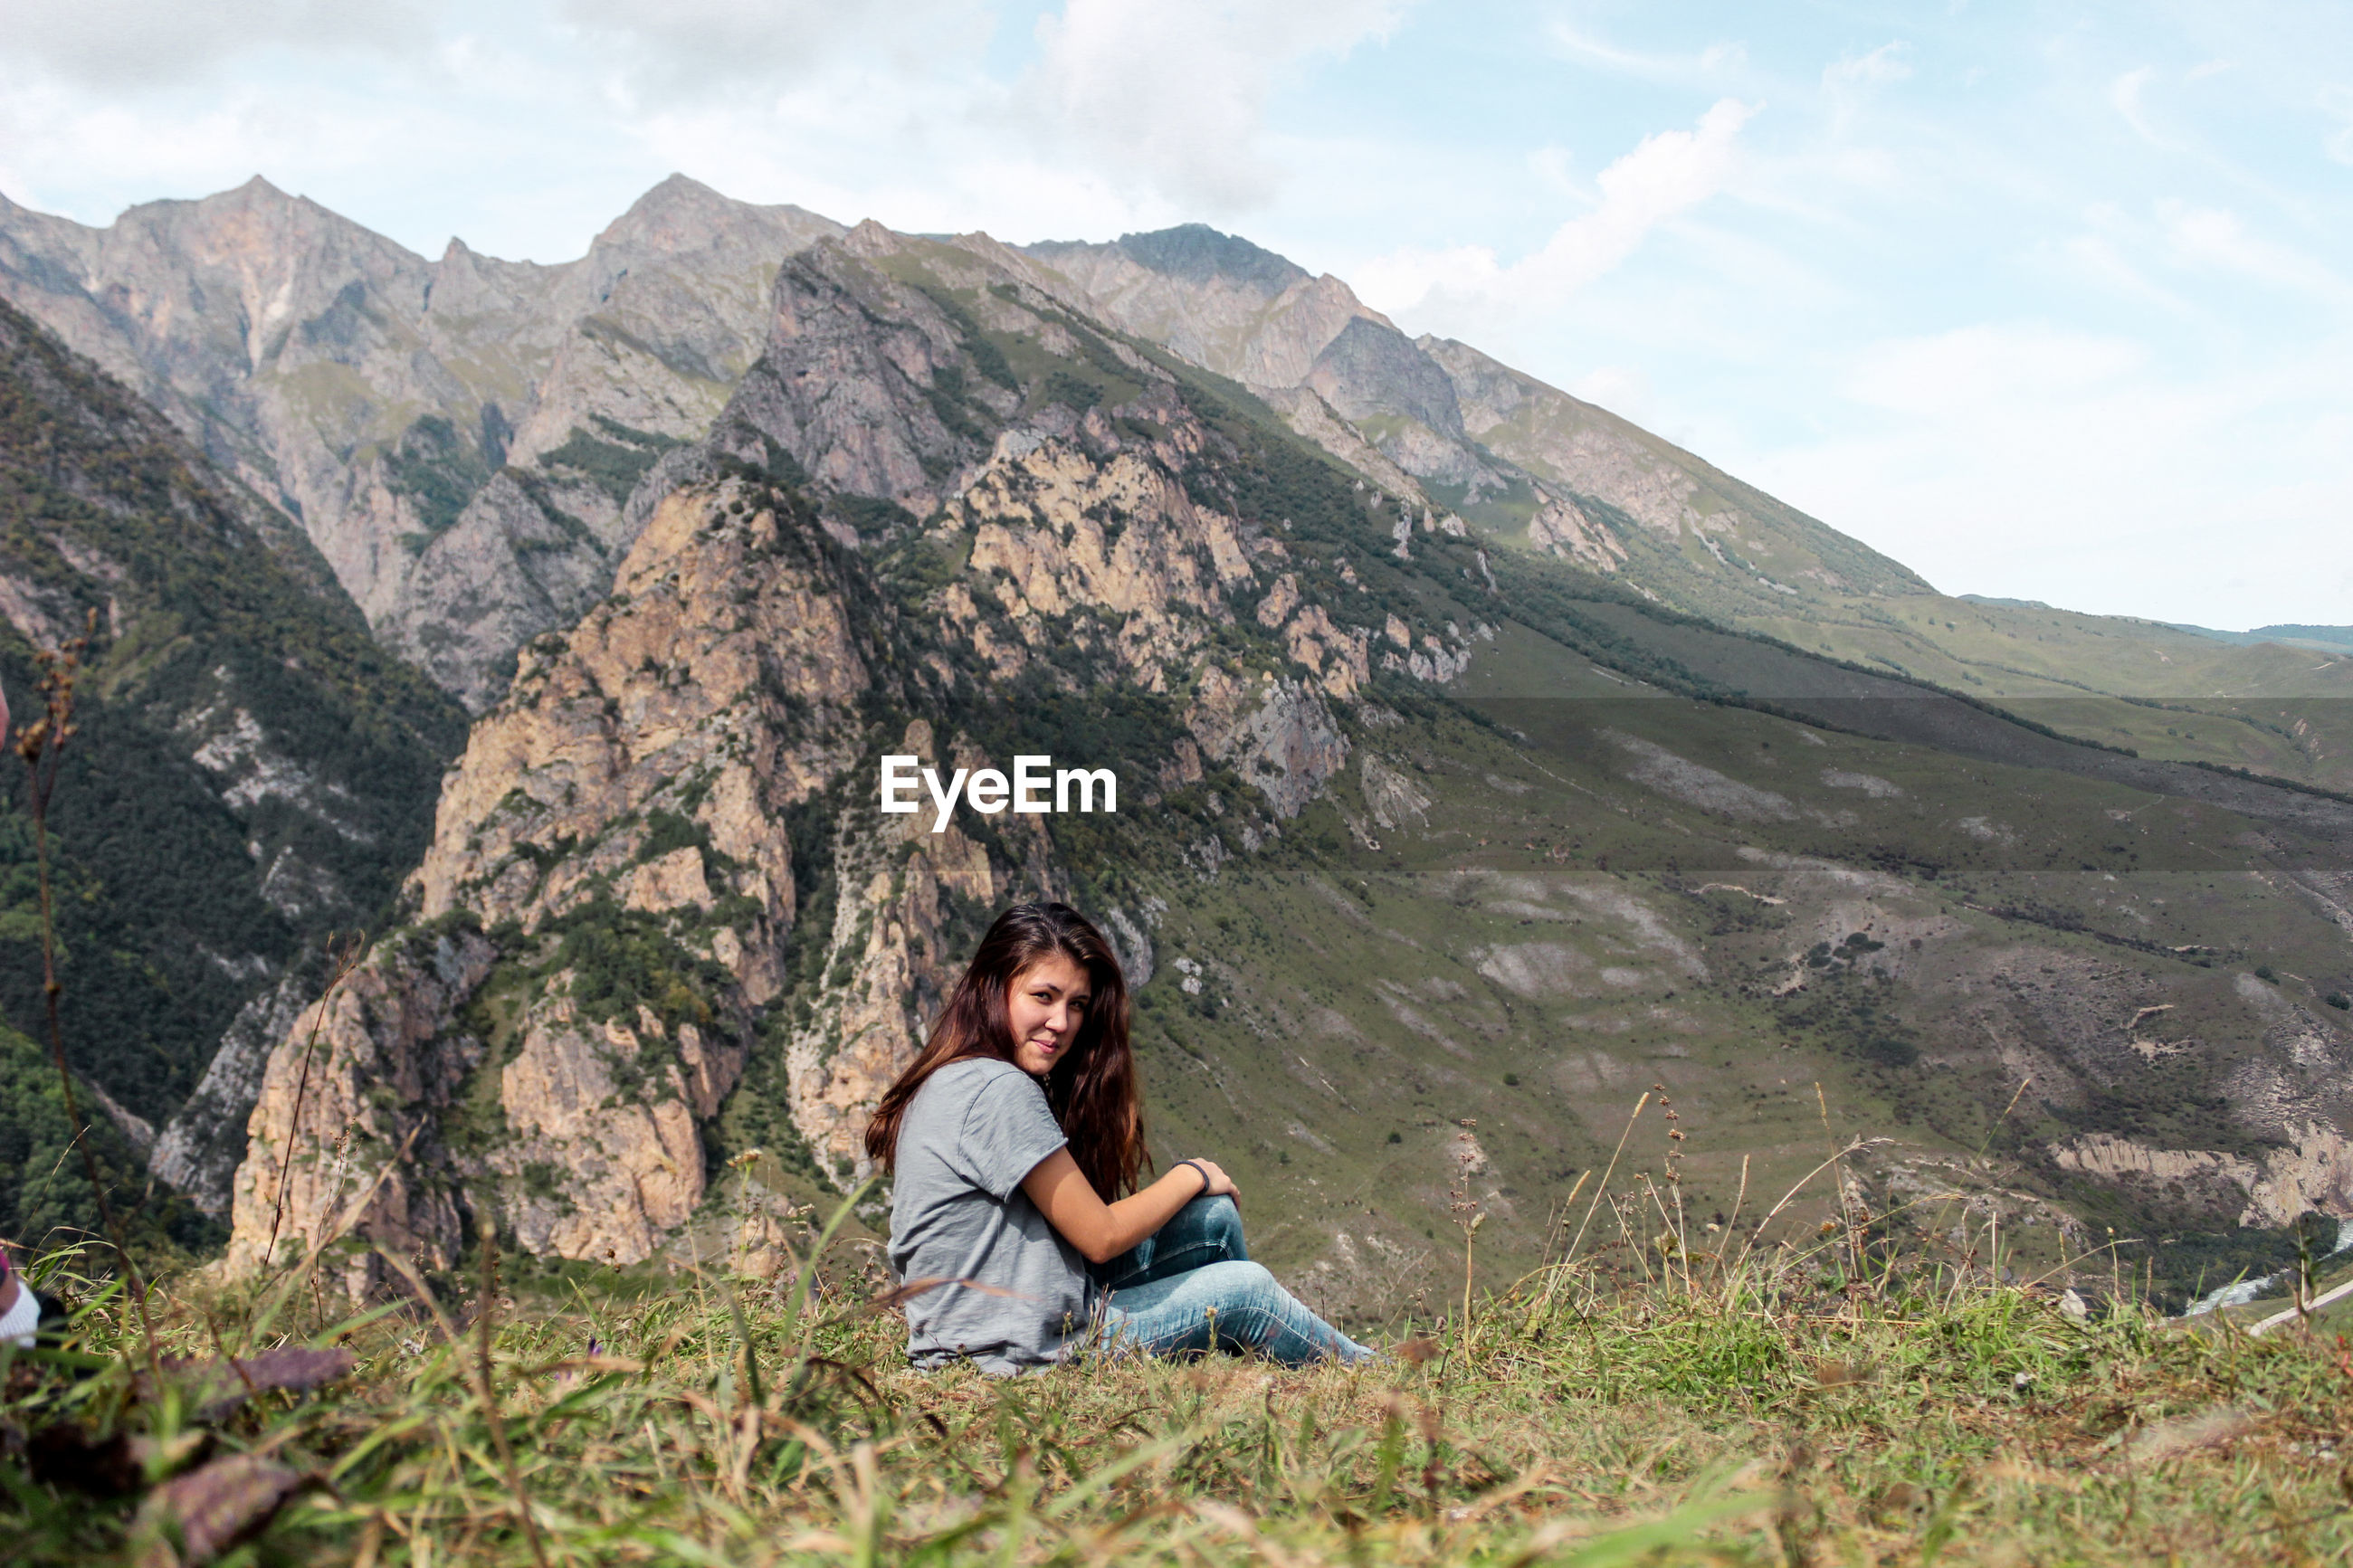 Side view of young woman sitting on field against mountain range